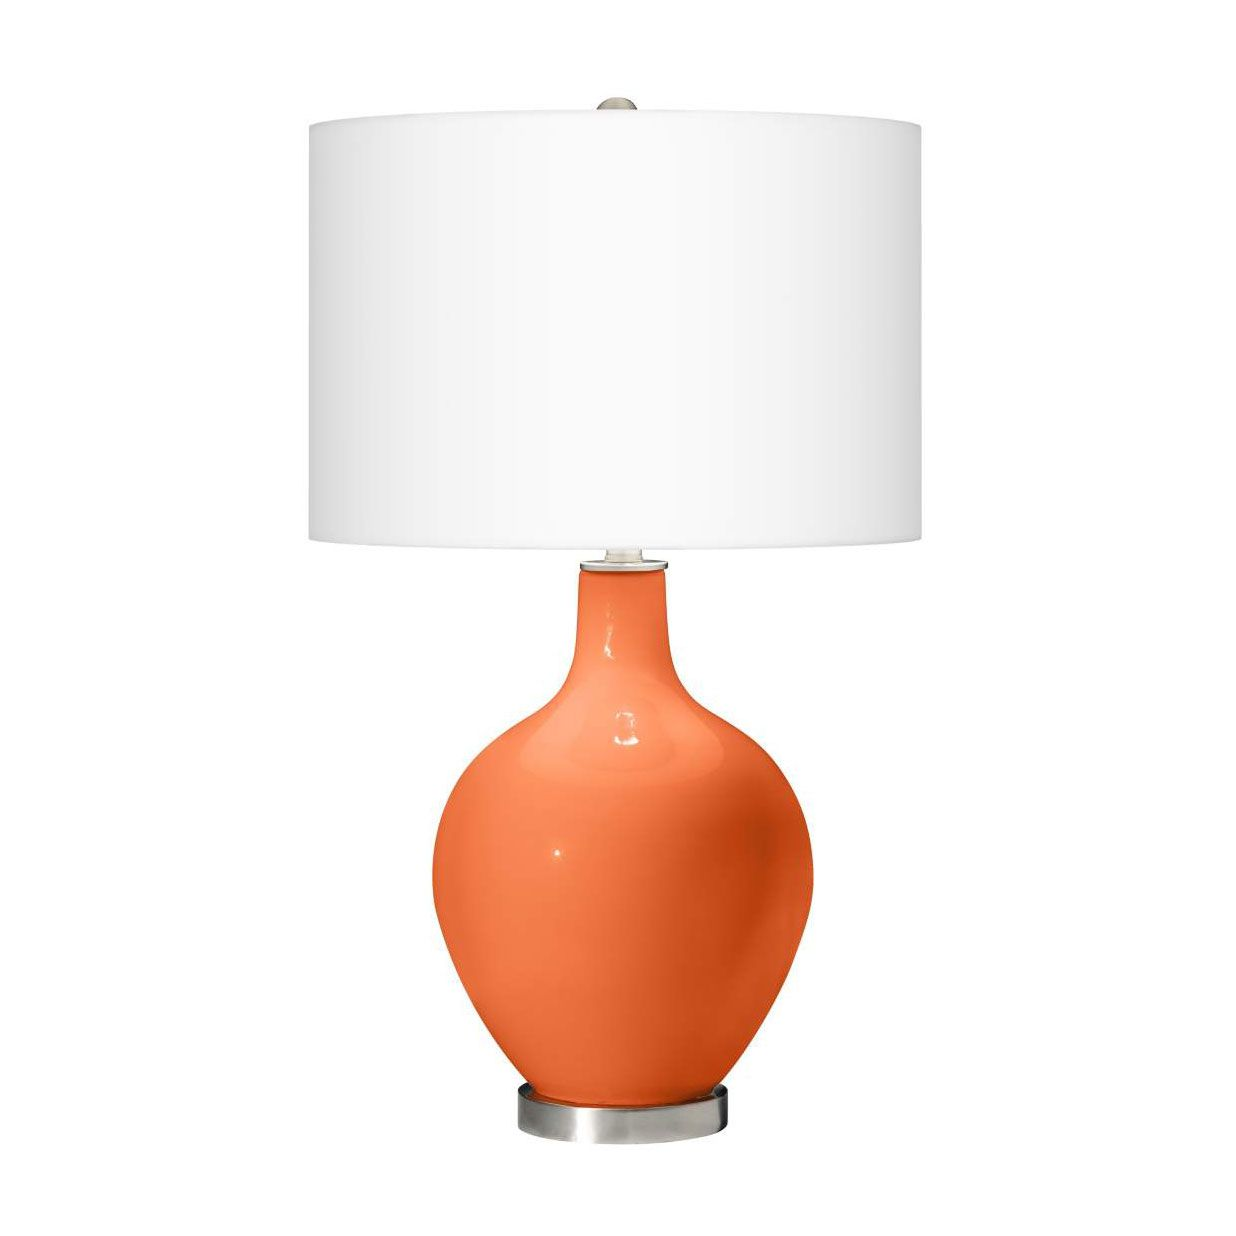 Furniture And Decor For The Modern Lifestyle Coral Lamp Table